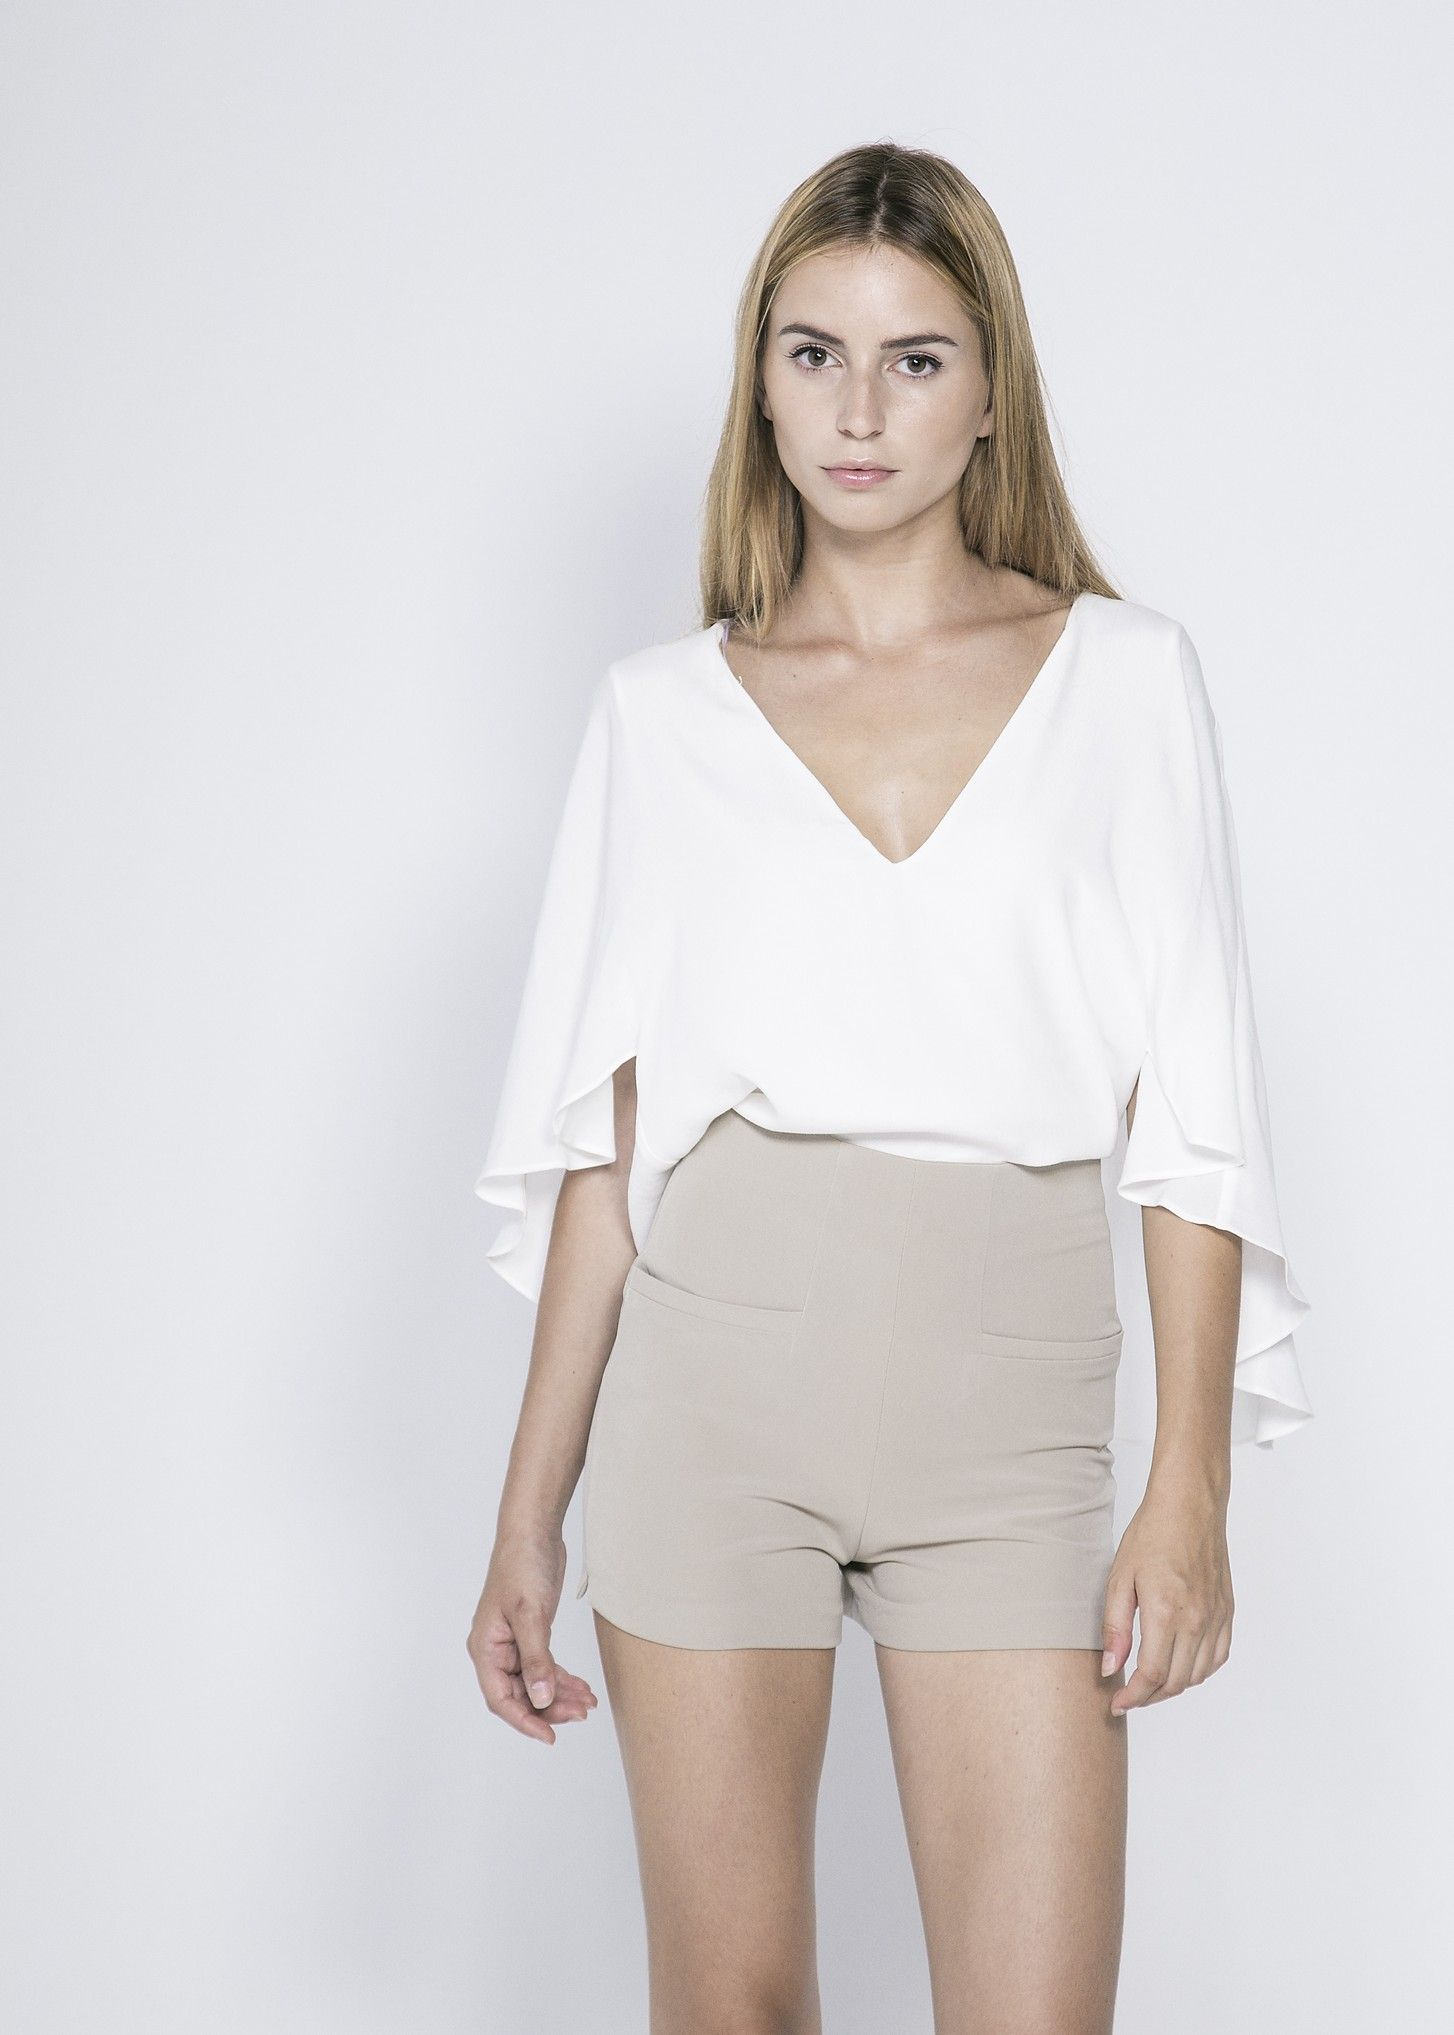 "Beige High-Waisted Shorts with Pockets. Zip back. Material: 95% Polyester 5% Elastane. Model wears UK size S and her height is 5'8"" - £24.99 at www.froww.com"